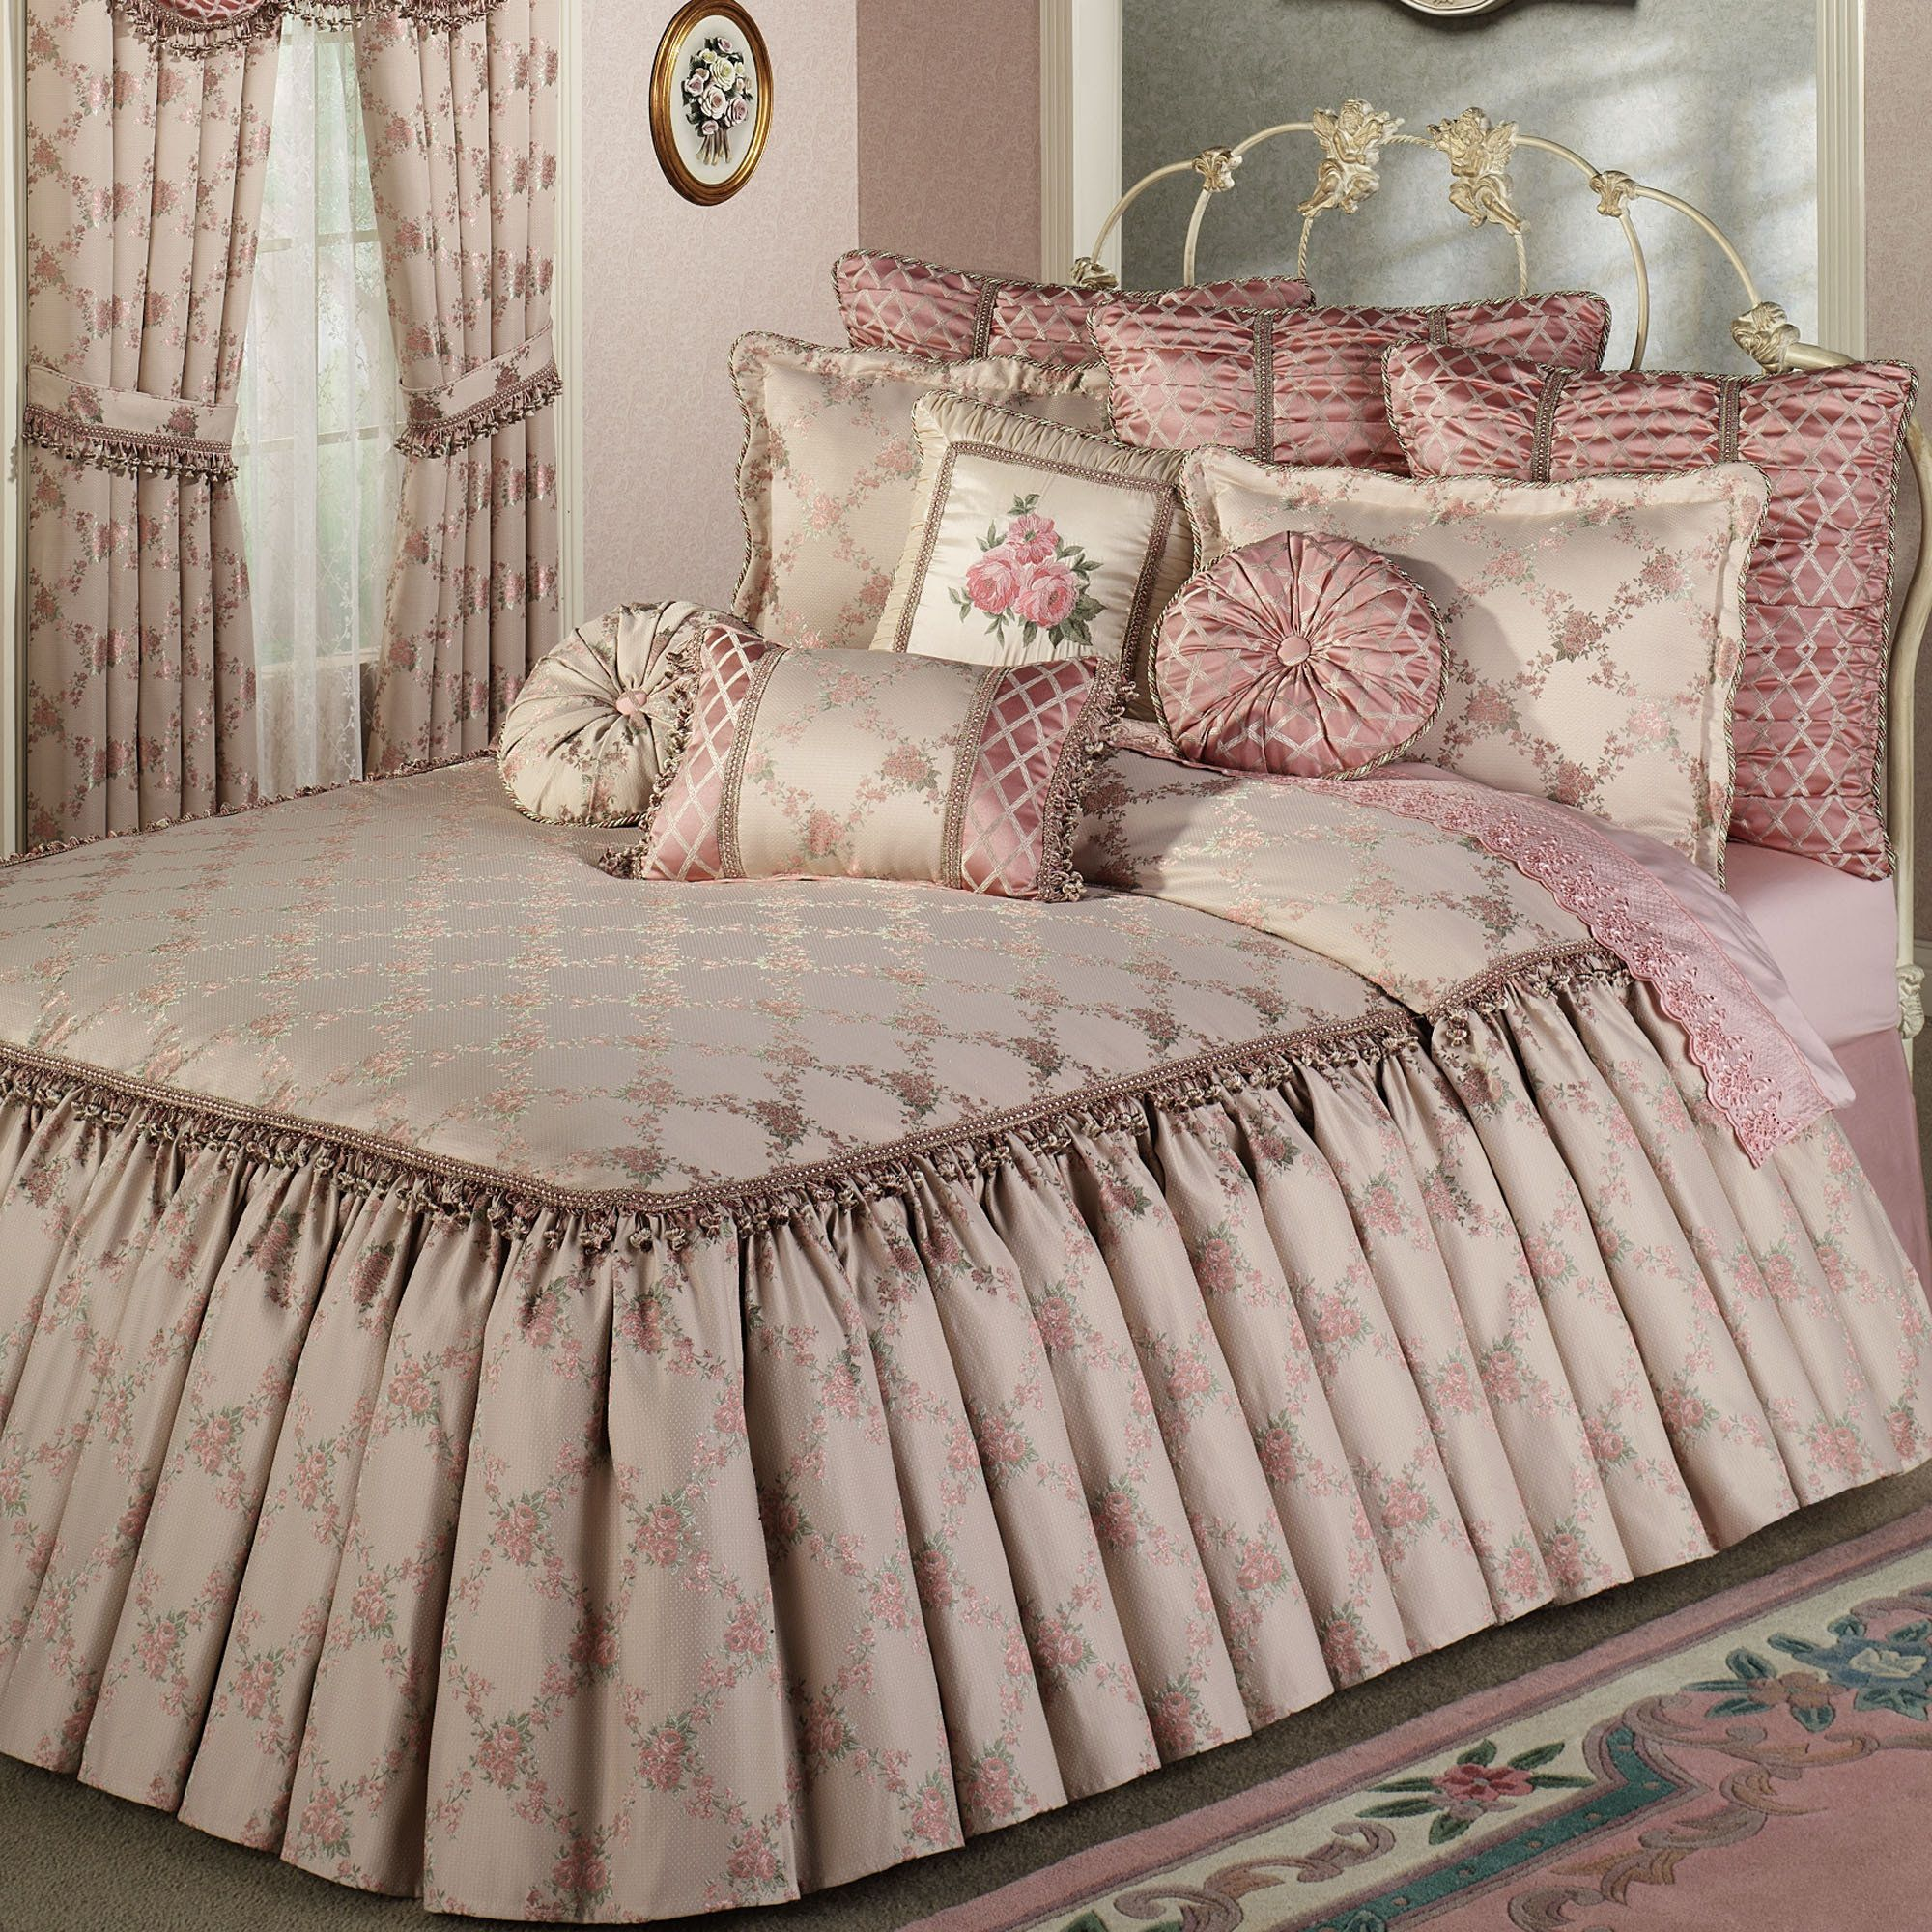 floral grande cherish fawn bedspreads curtain oversized bedspread gathered country pin curtains